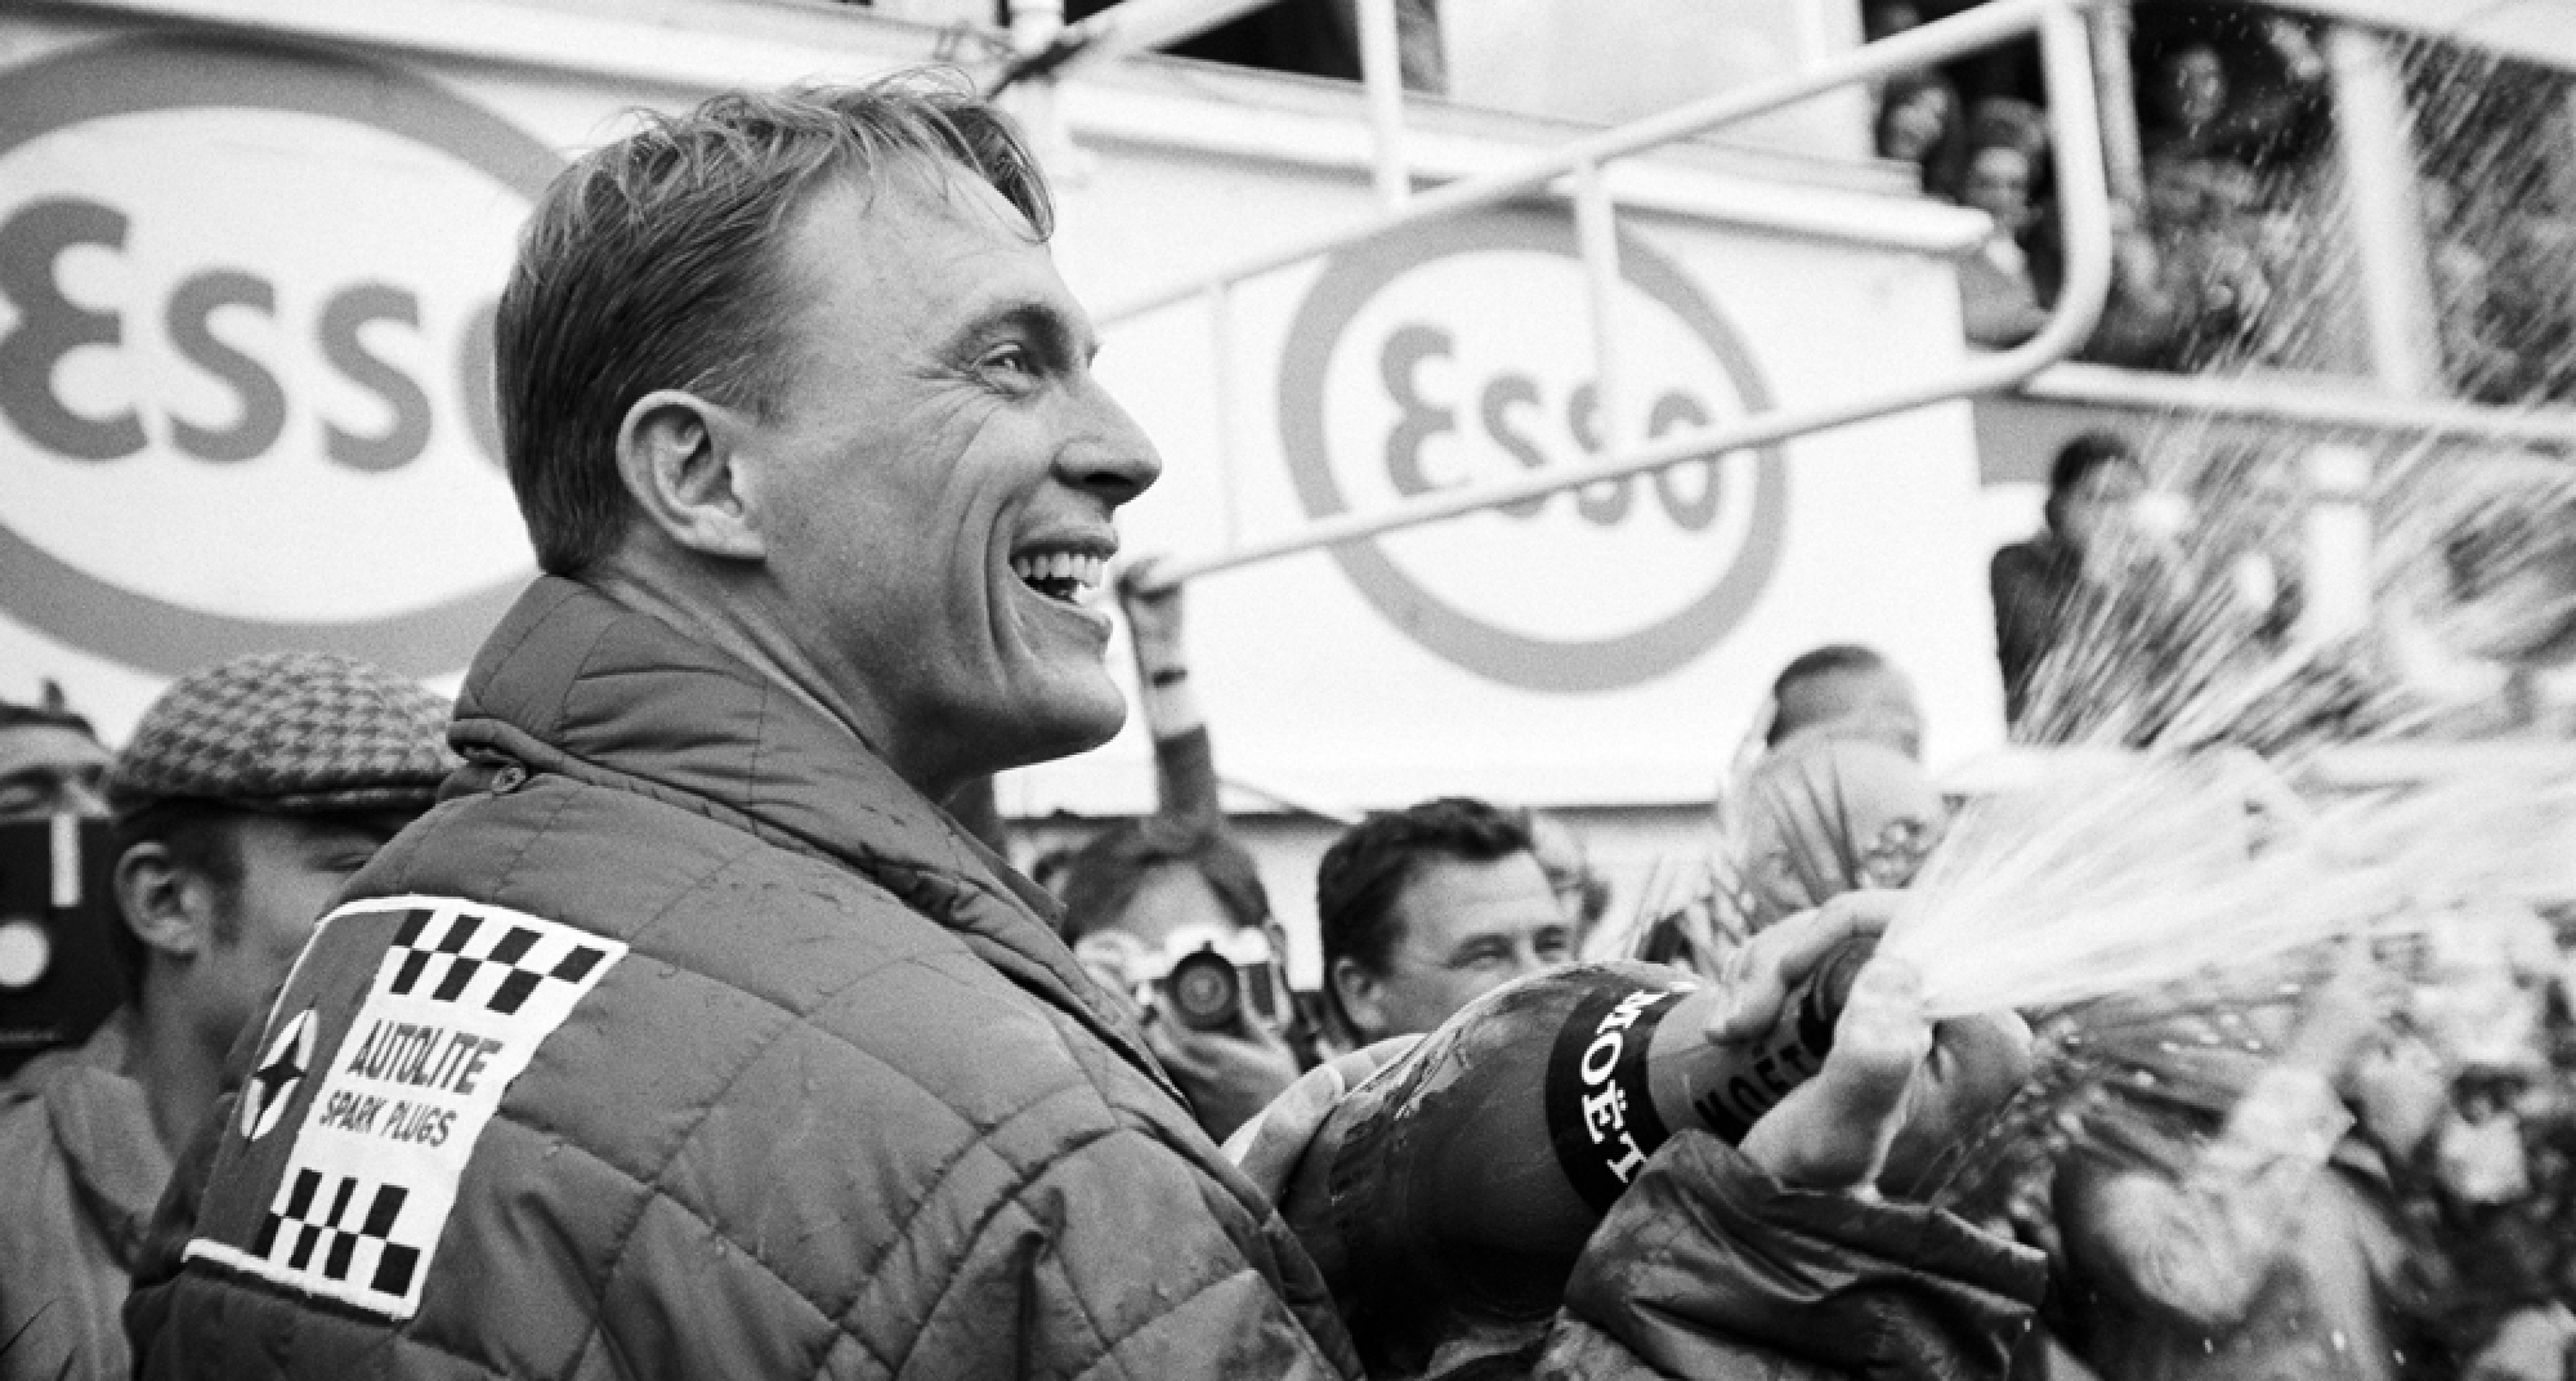 The delighted winner Dan Gurney, France, Le Mans, 10 June 1967. (Photo by Rainer W. Schlegelmilch/Getty Images)